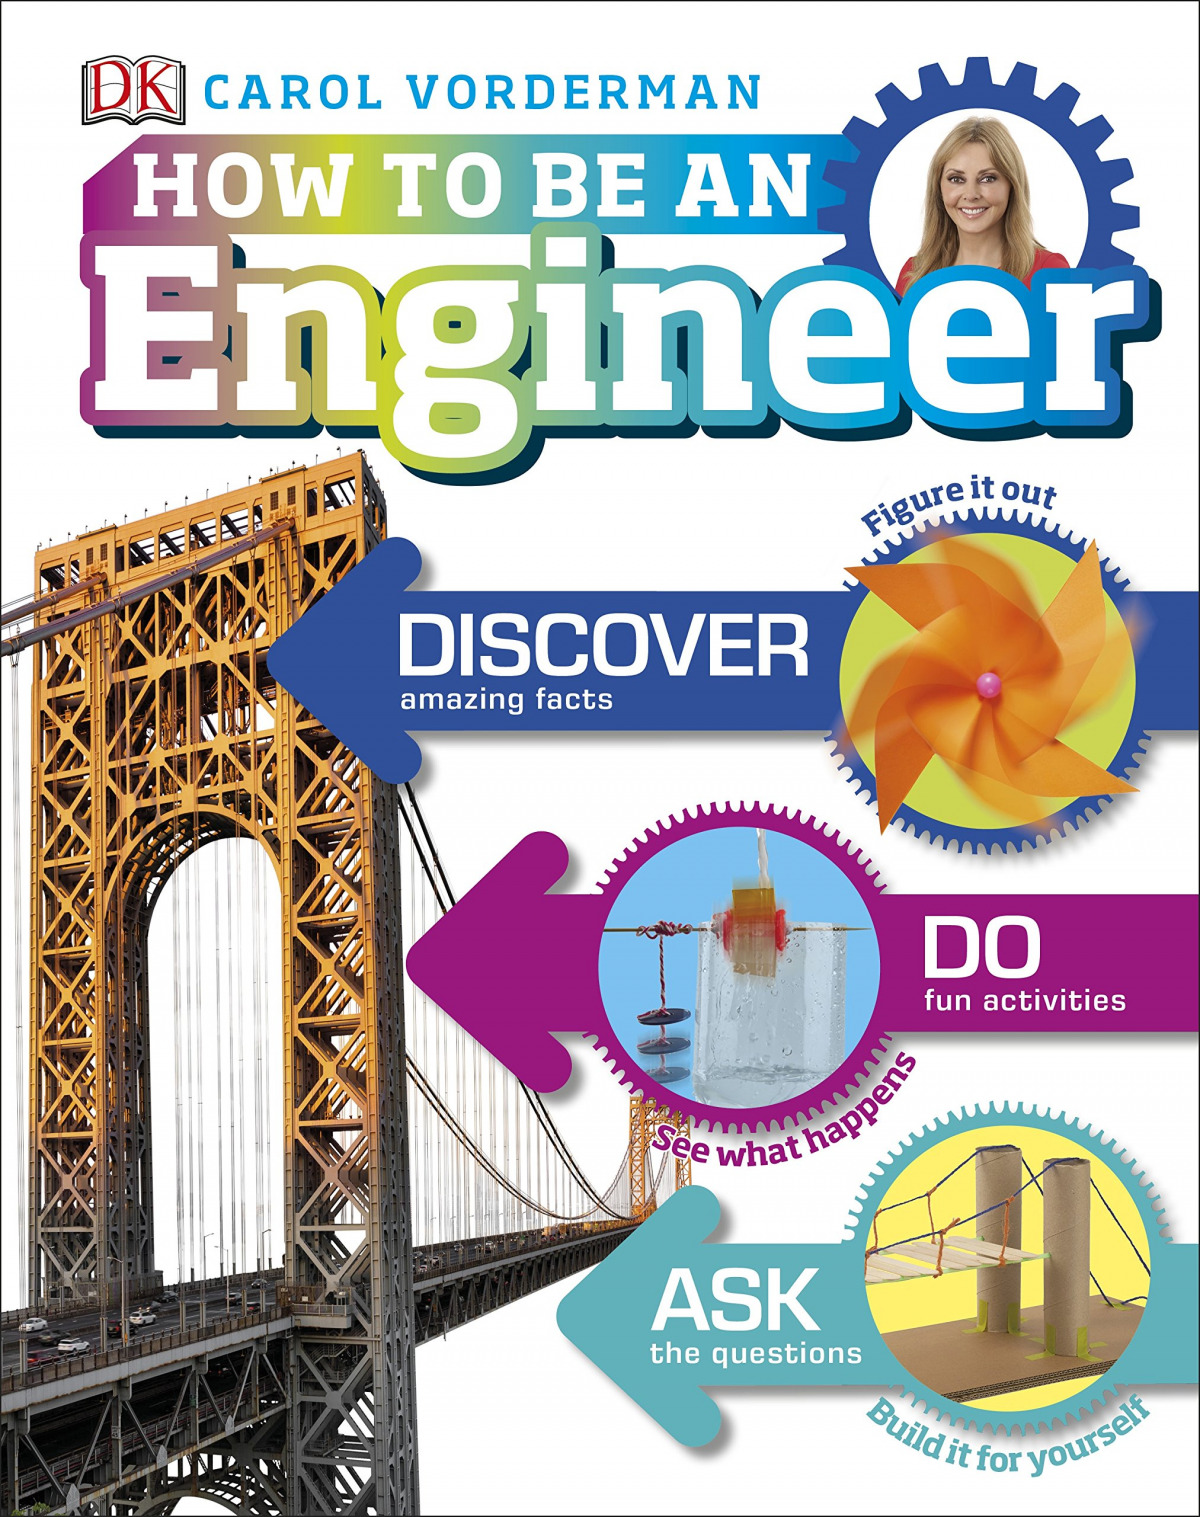 (VORDERMAN).HOW TO BE AN ENGINEER.(DK)